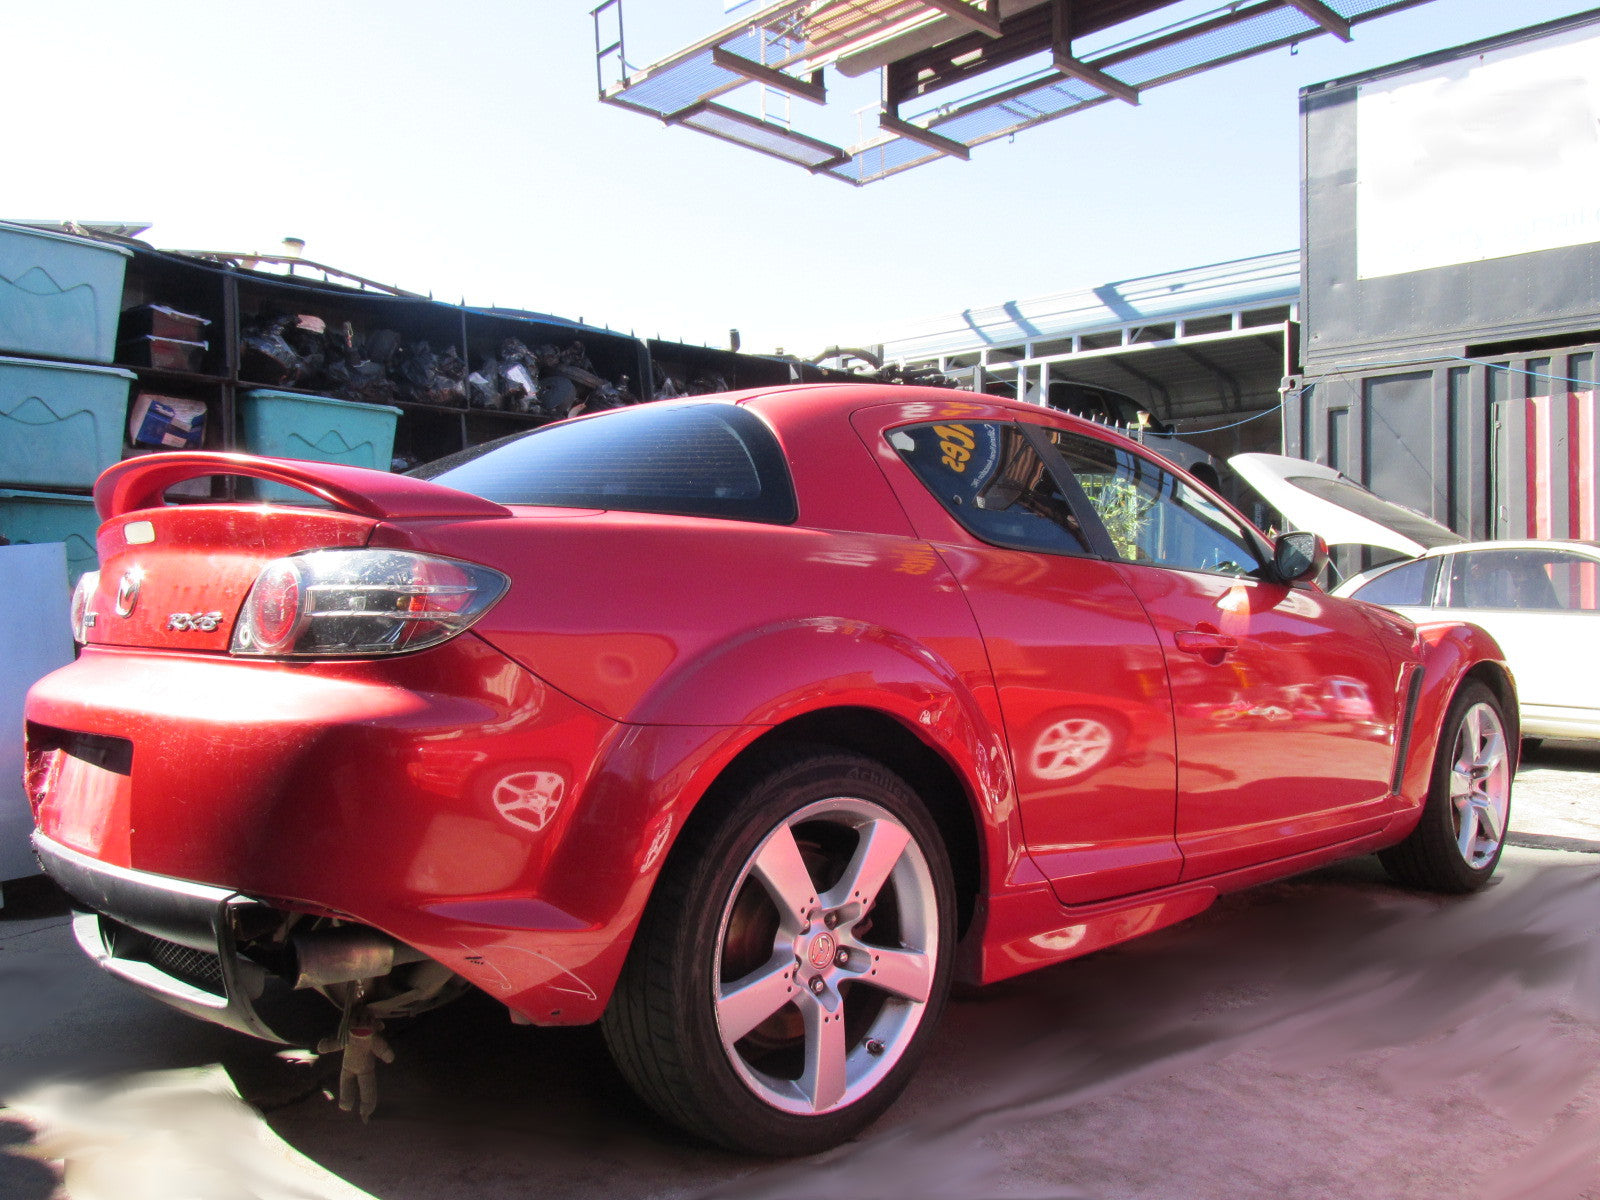 2004 Mazda RX8 A/T 4 Ports 1.3L Renesis - Ap1 Project Picture Gallery